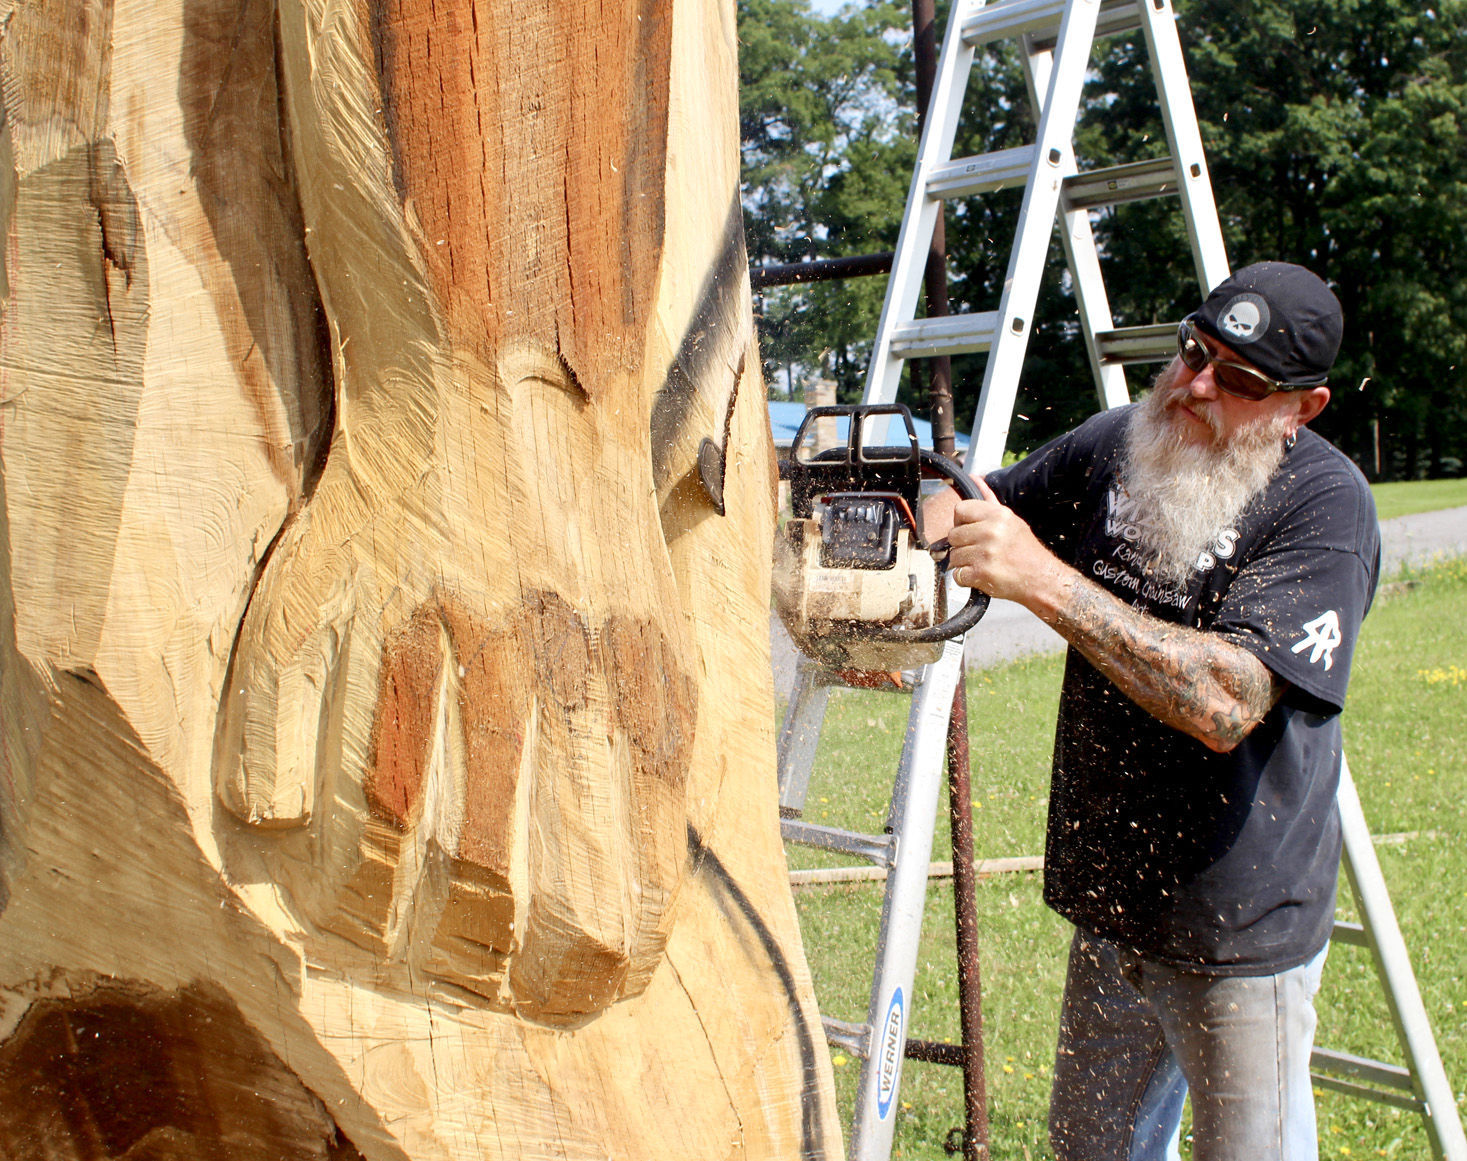 Chainsaw wizard featured on cnn for trump carving local